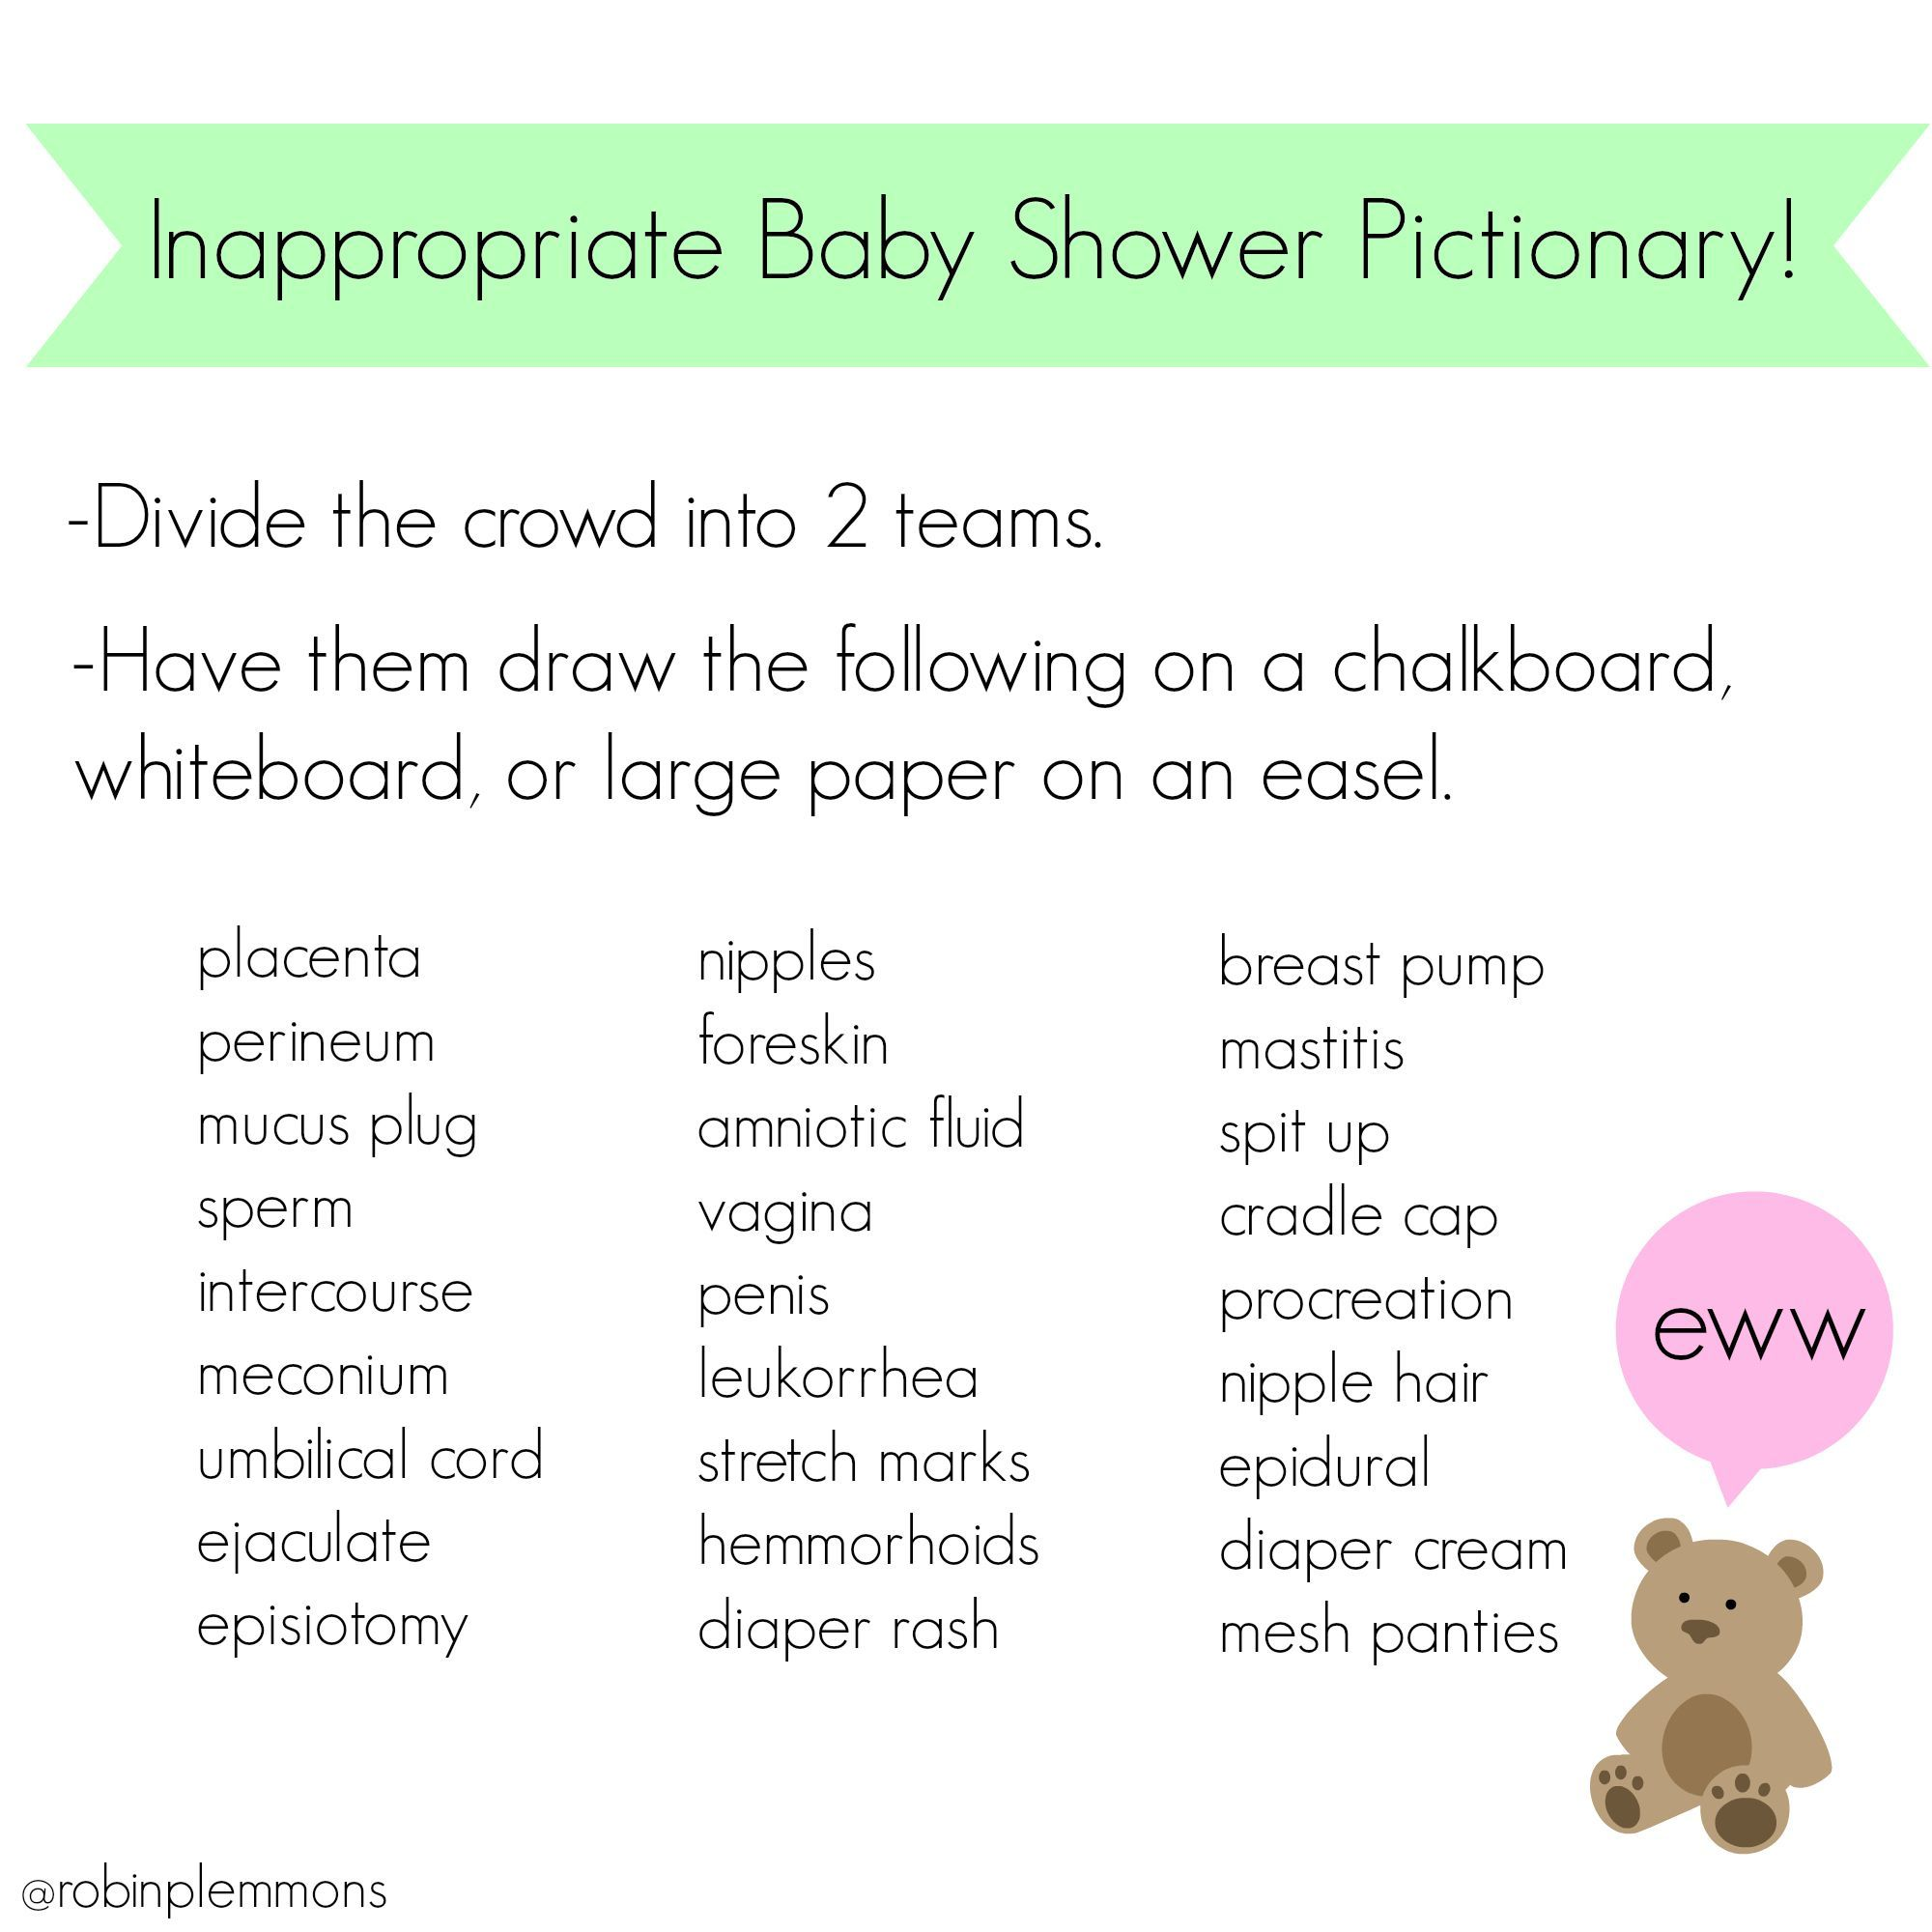 Inappropriate Baby Shower Pictionary! Because All Those